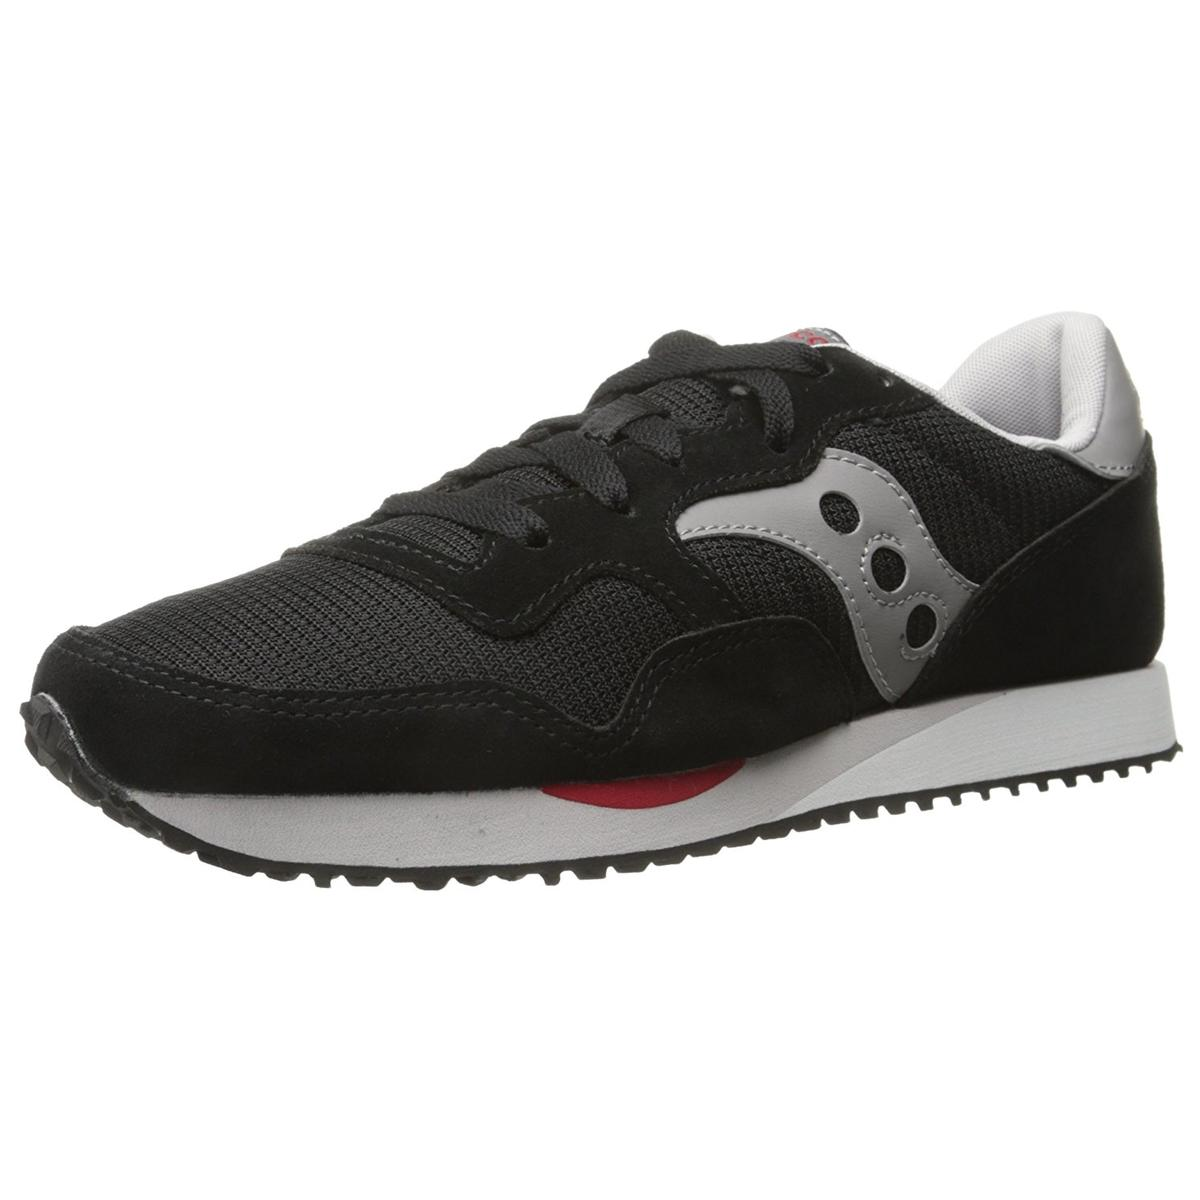 Saucony DXN Trainer Mens Black Grey Sneakers by Saucony